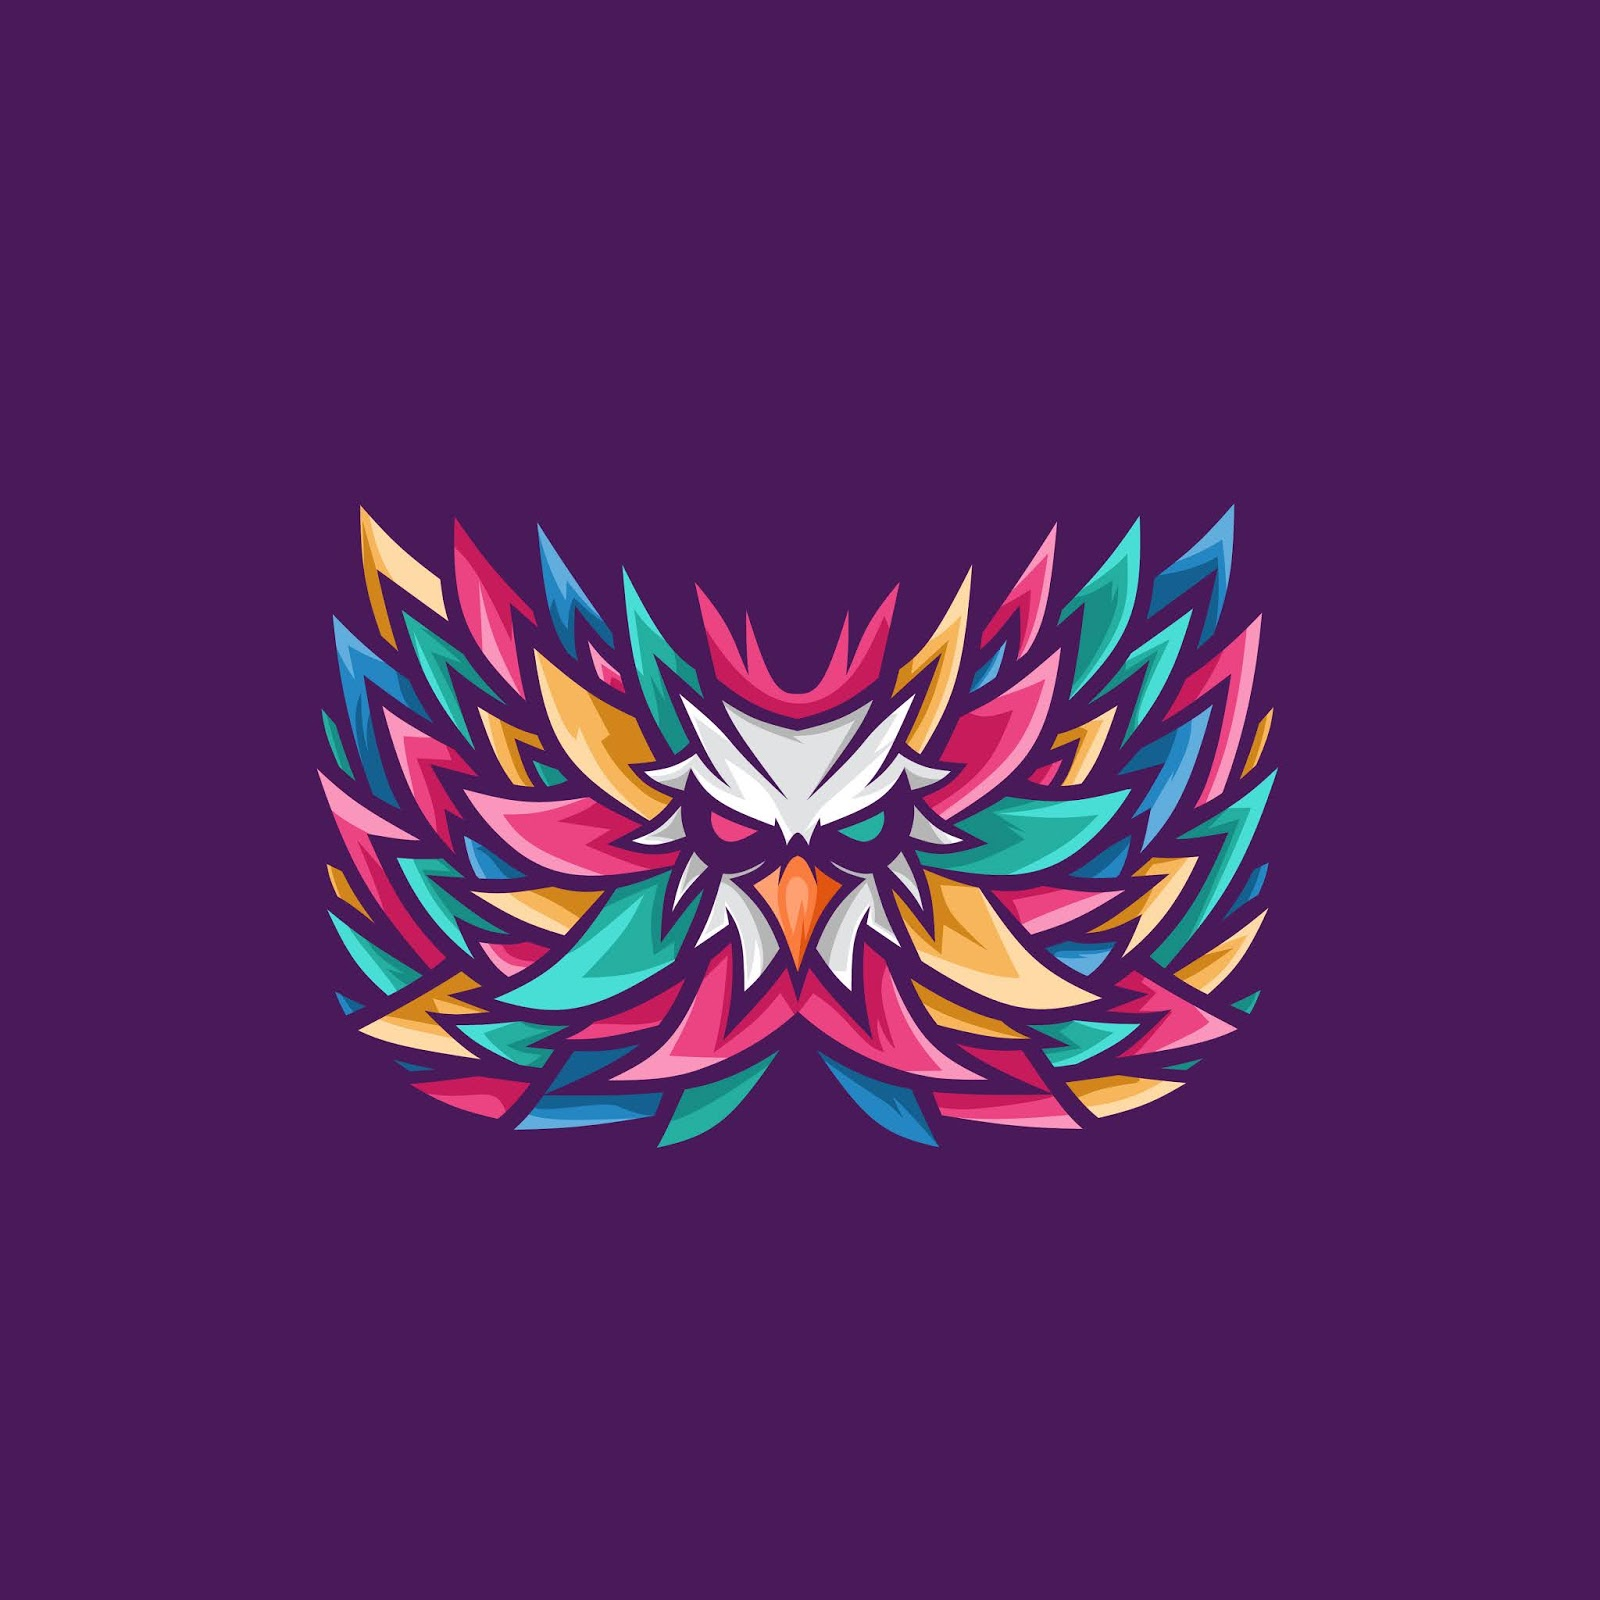 Colorful Bird Logo Free Download Vector CDR, AI, EPS and PNG Formats